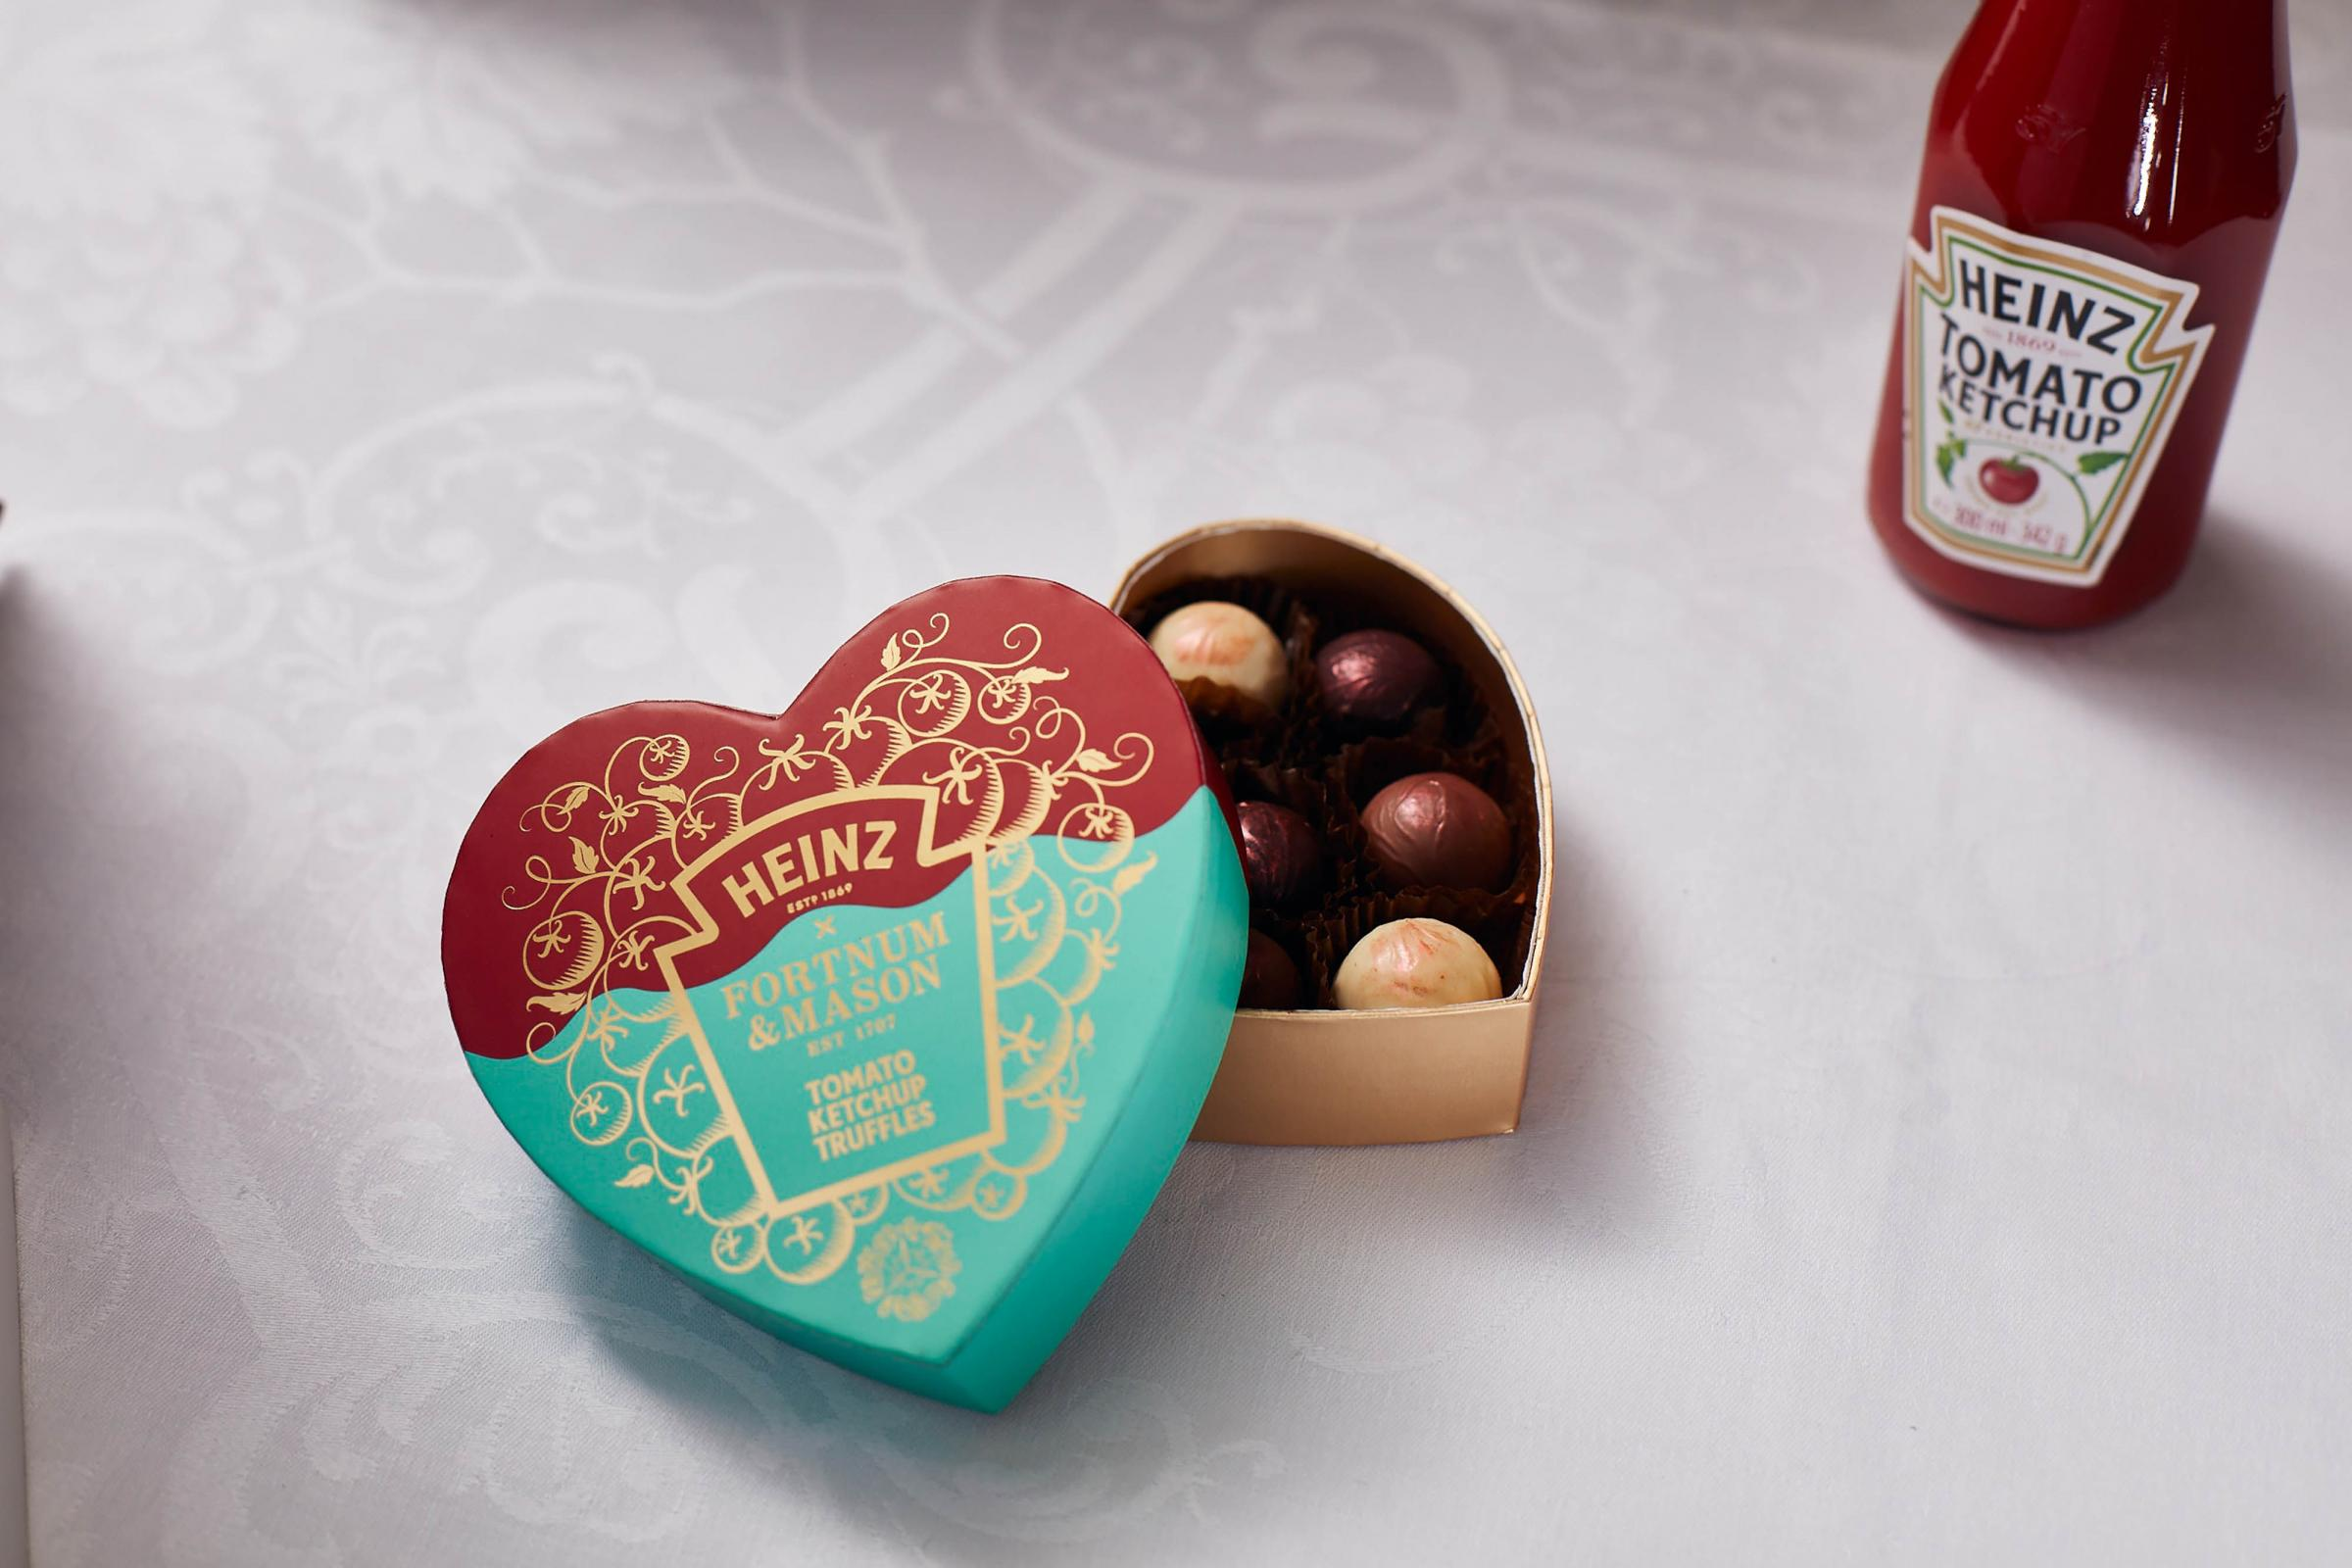 heinz-launches-ketchup-truffles